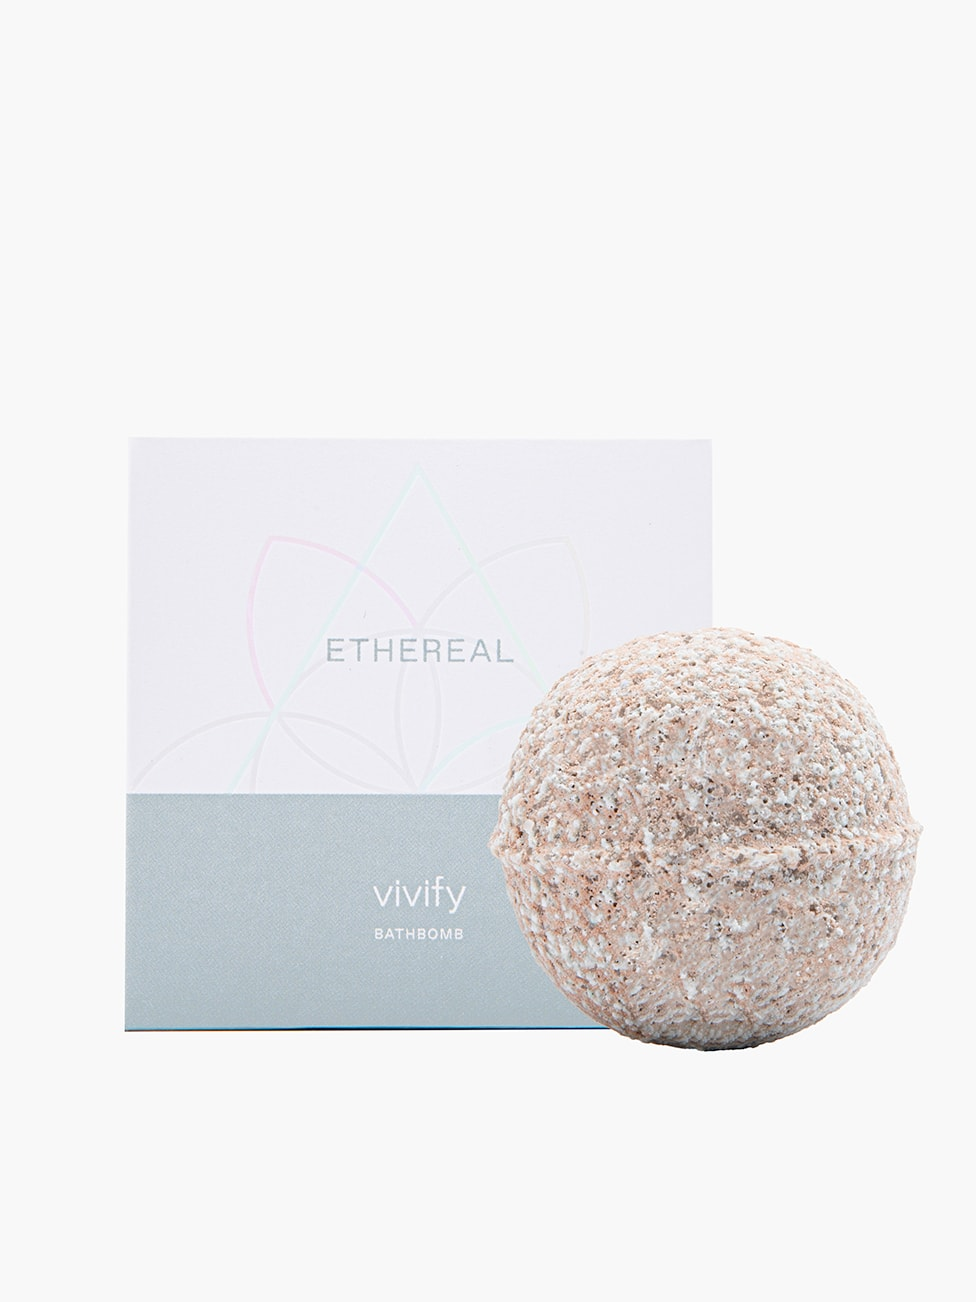 Vivify_Bathbomb_Package_Ethereal_Dermocosmetics_Skincare_Handmade_Greek_Products